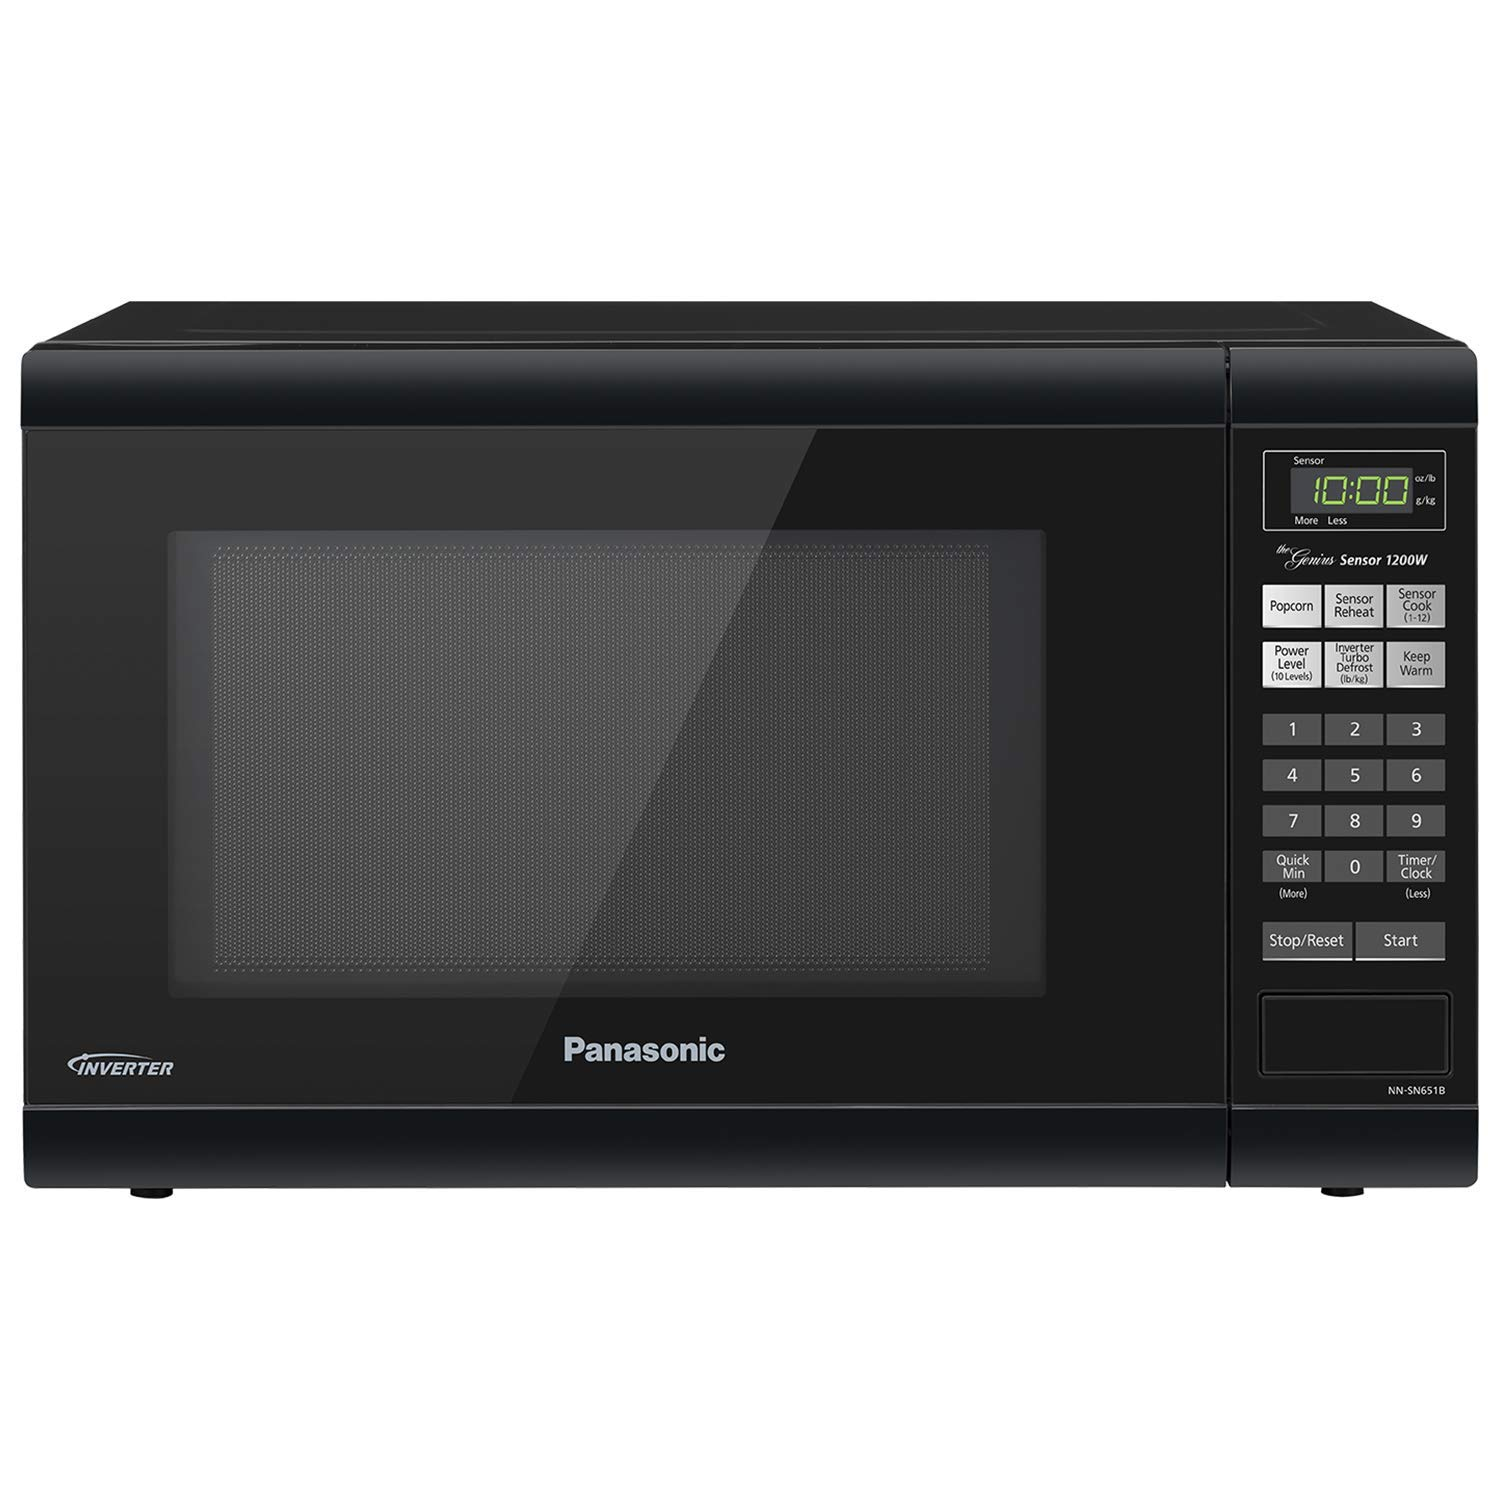 Panasonic Microwave Oven NN-SN651B Black Countertop with Inverter Technology and Genius Sensor, 1.2 Cu. Ft, 1200W (Certified Refurbished)